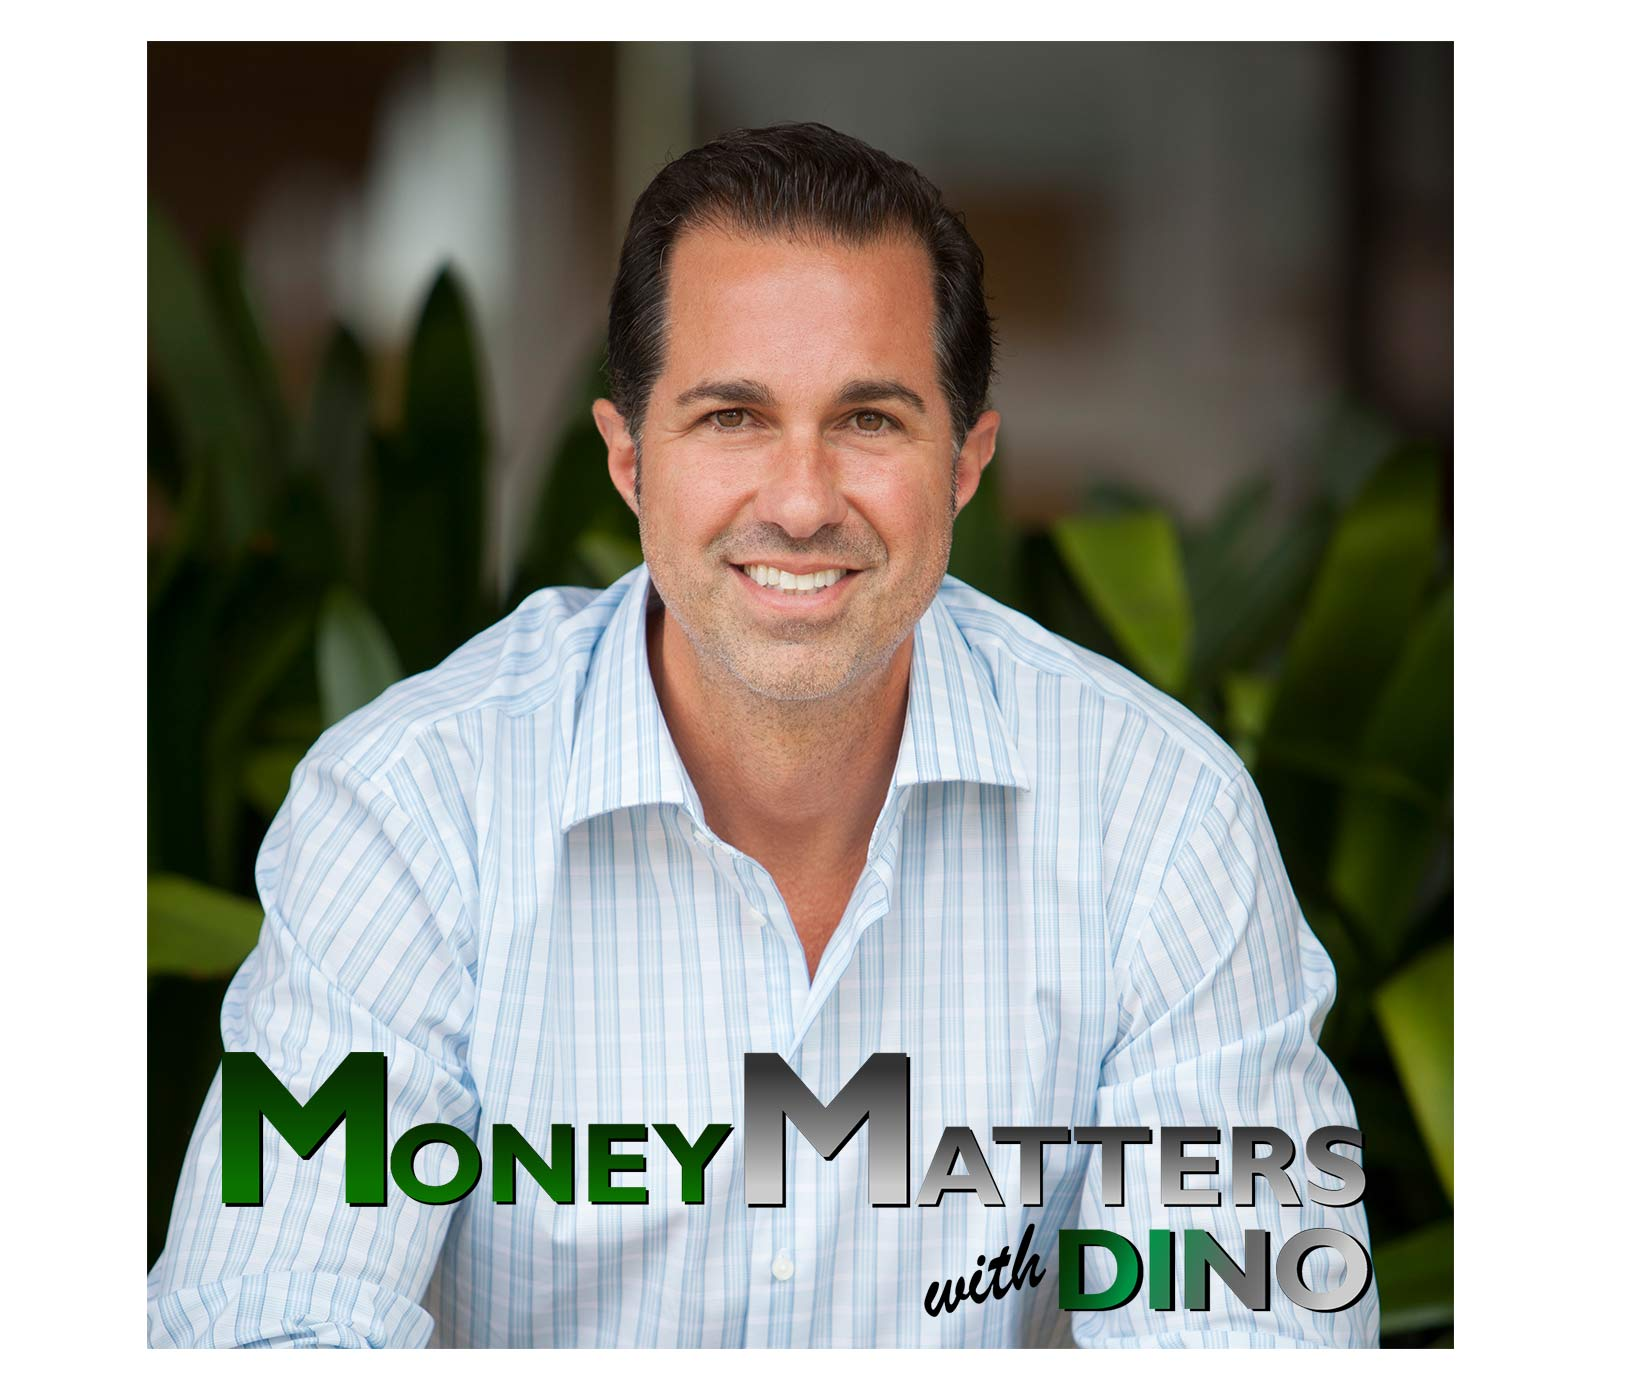 Money Matters With Dino